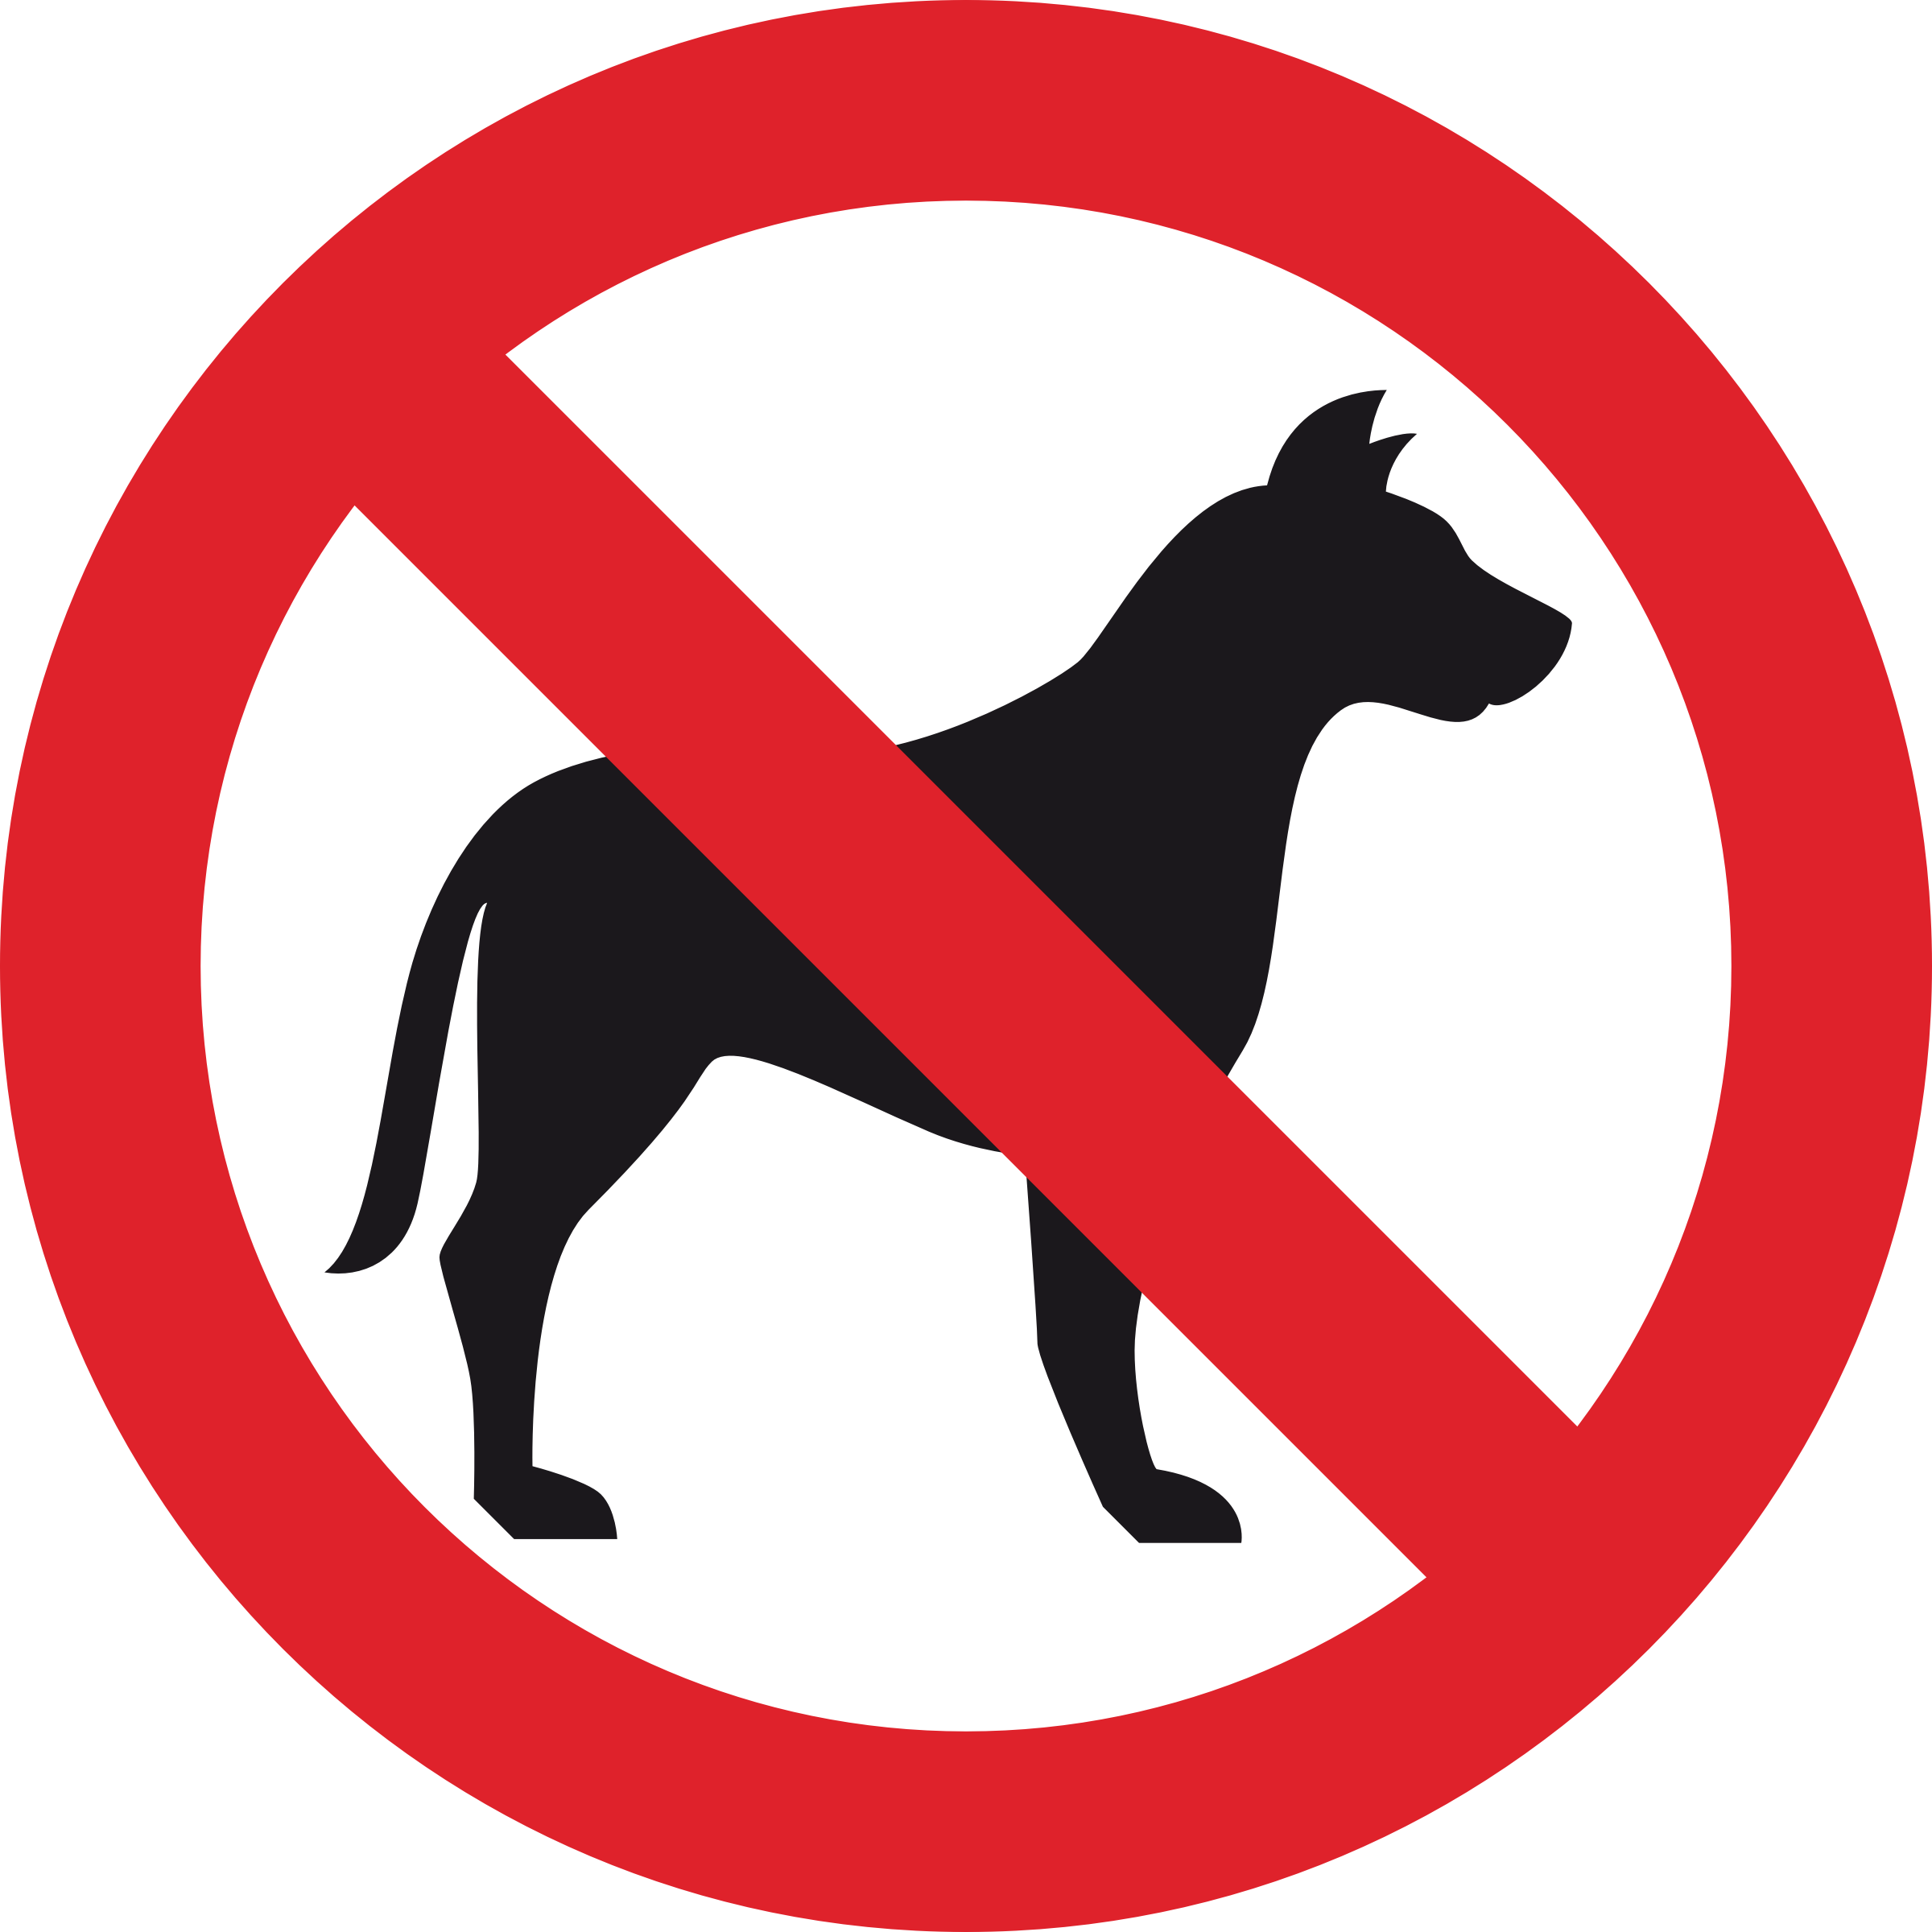 No Dogs Clipart.